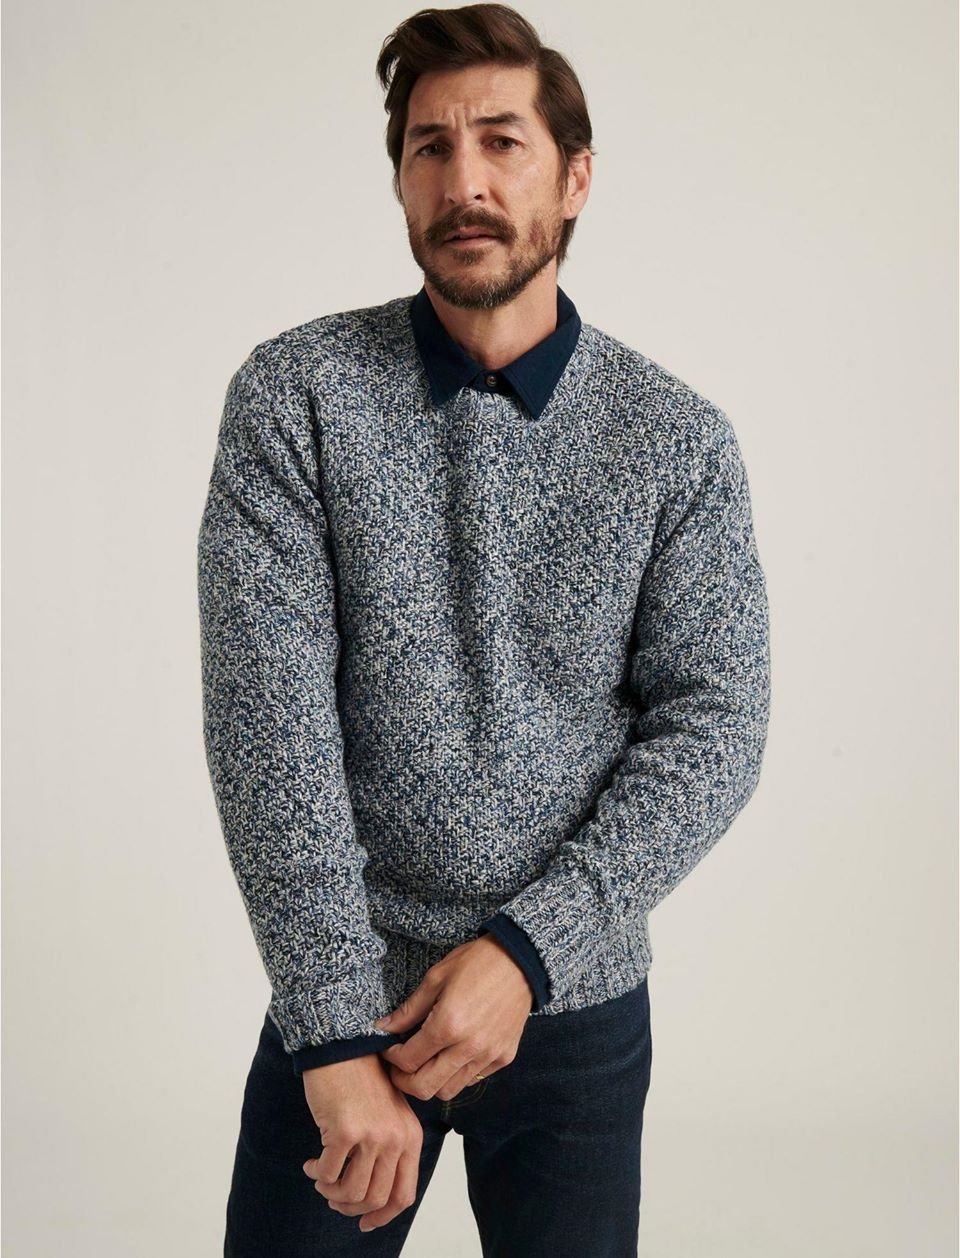 Cross Marl Stitch Pullover Sweater